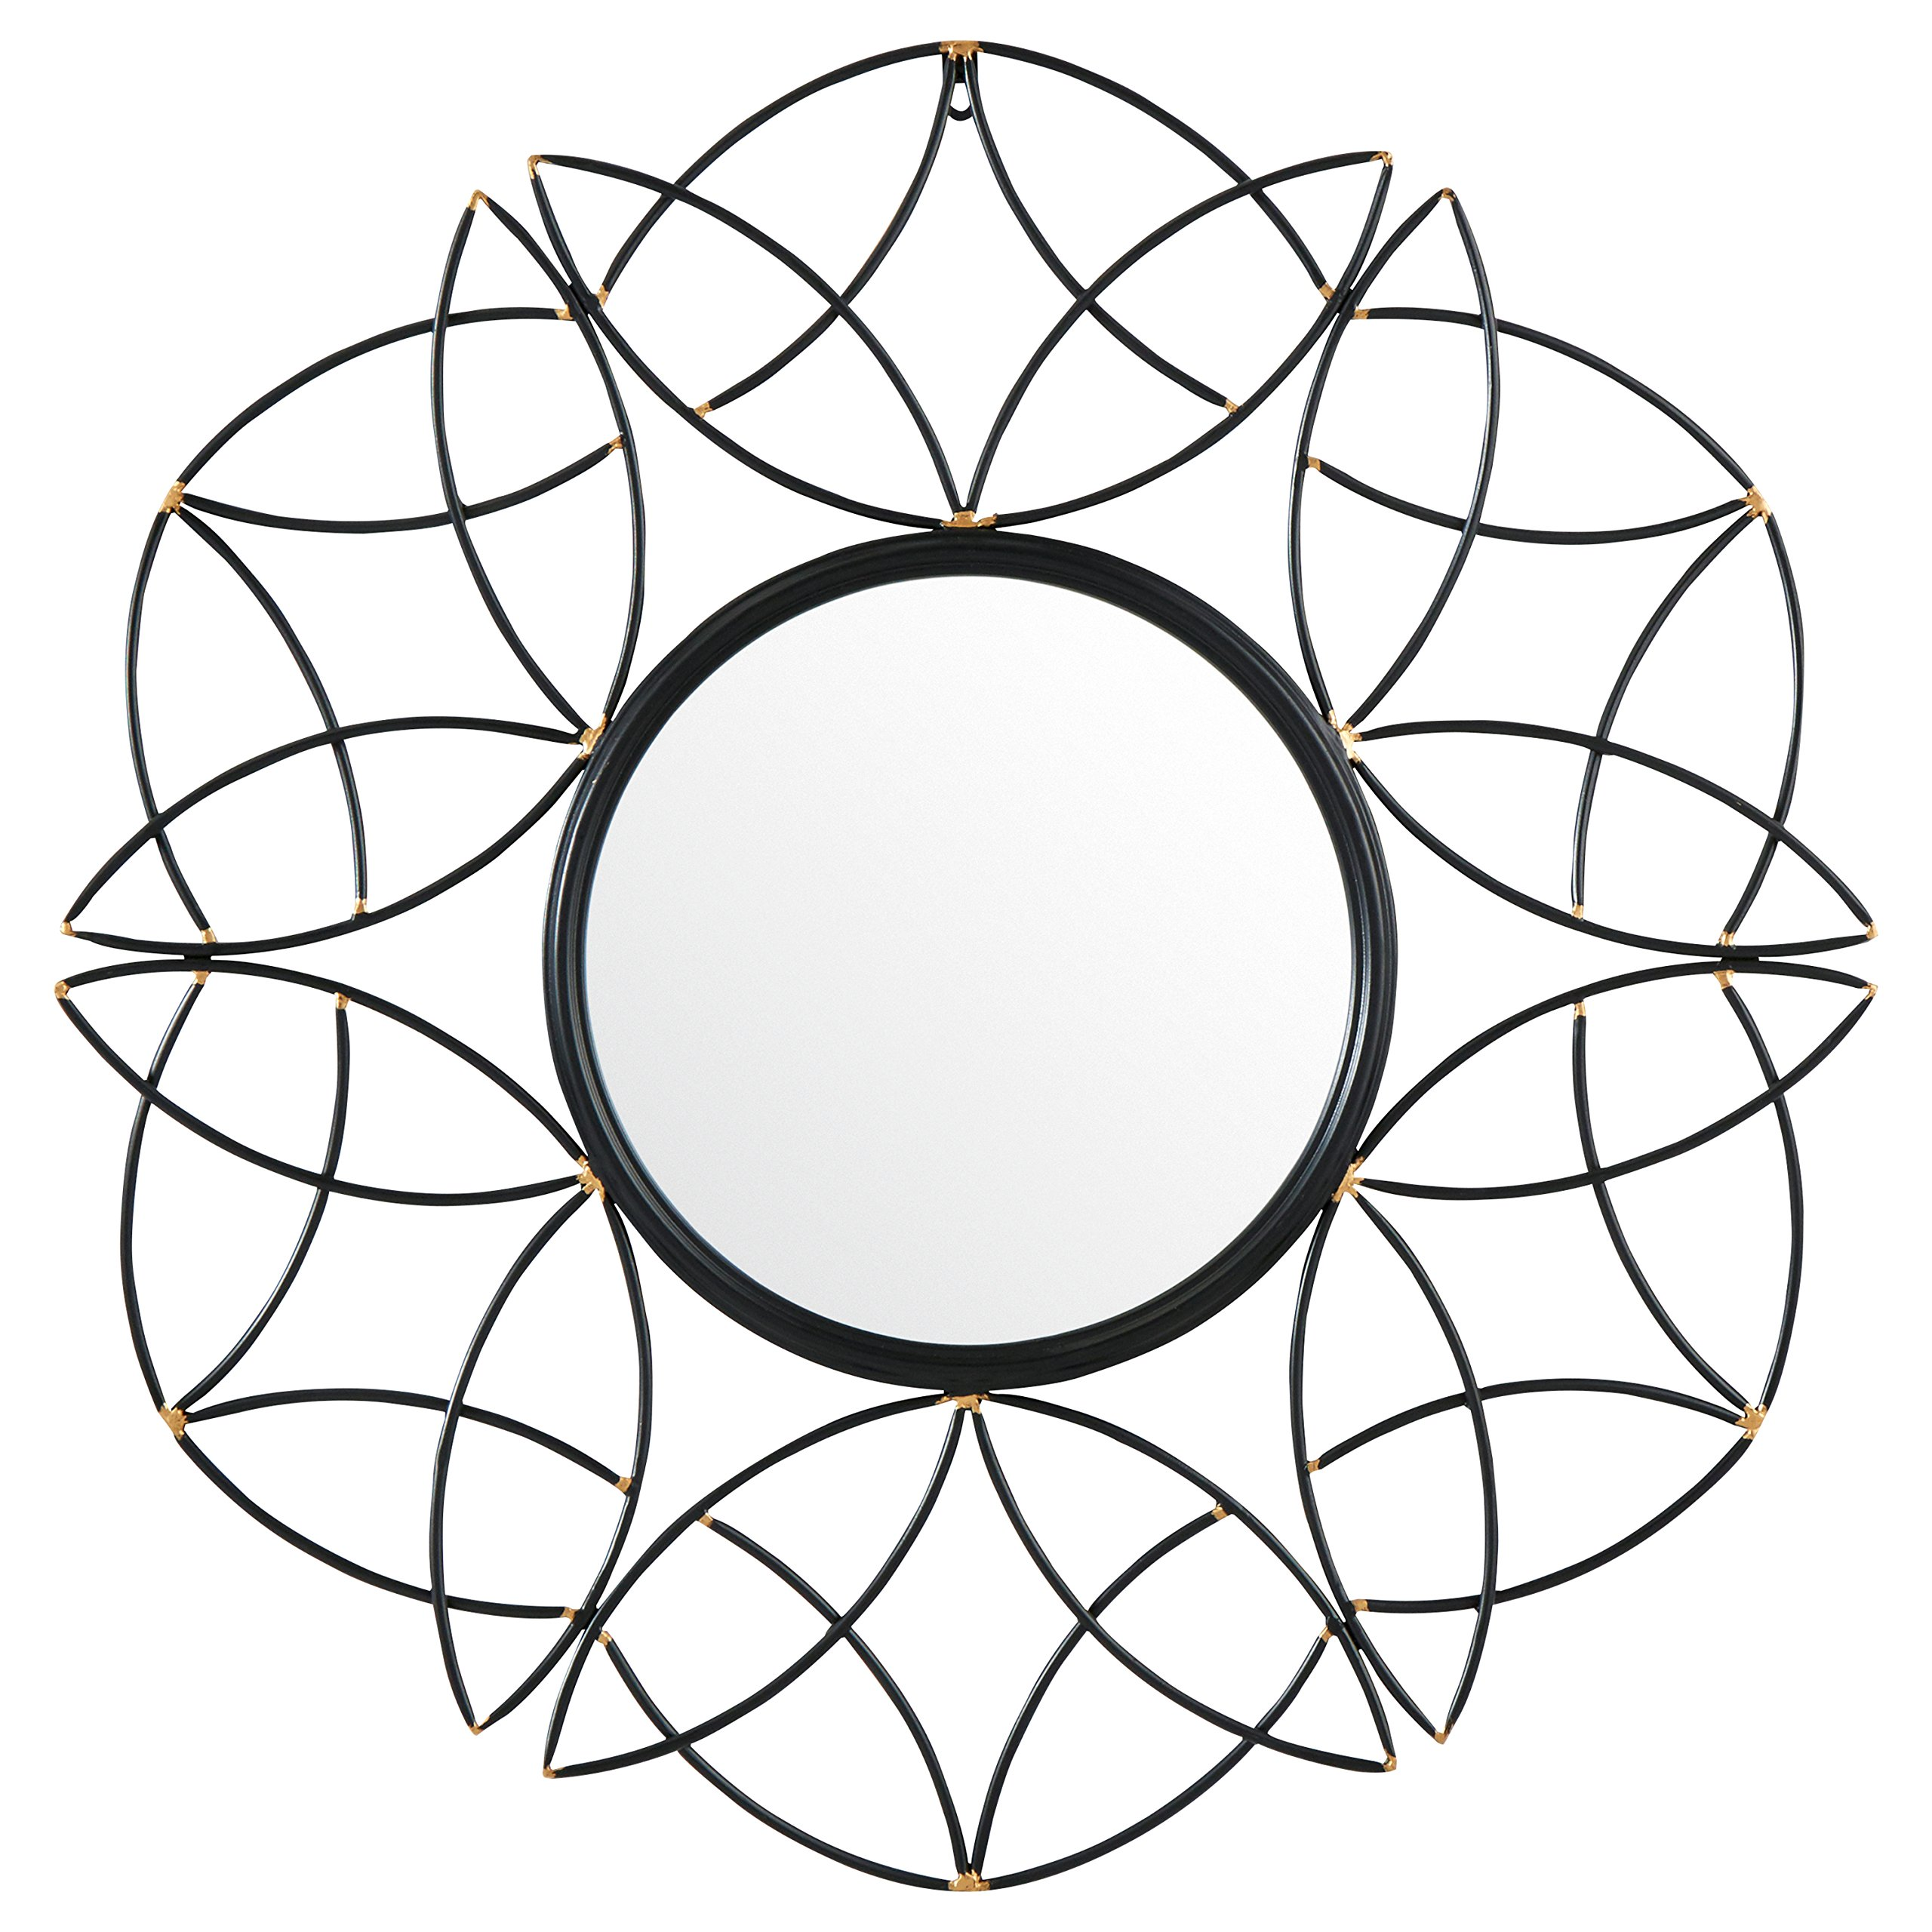 CDM product Rivet Modern Metal Floral Pattern Round Hanging Wall Mirror, 30.5 Inch Height, Black big image